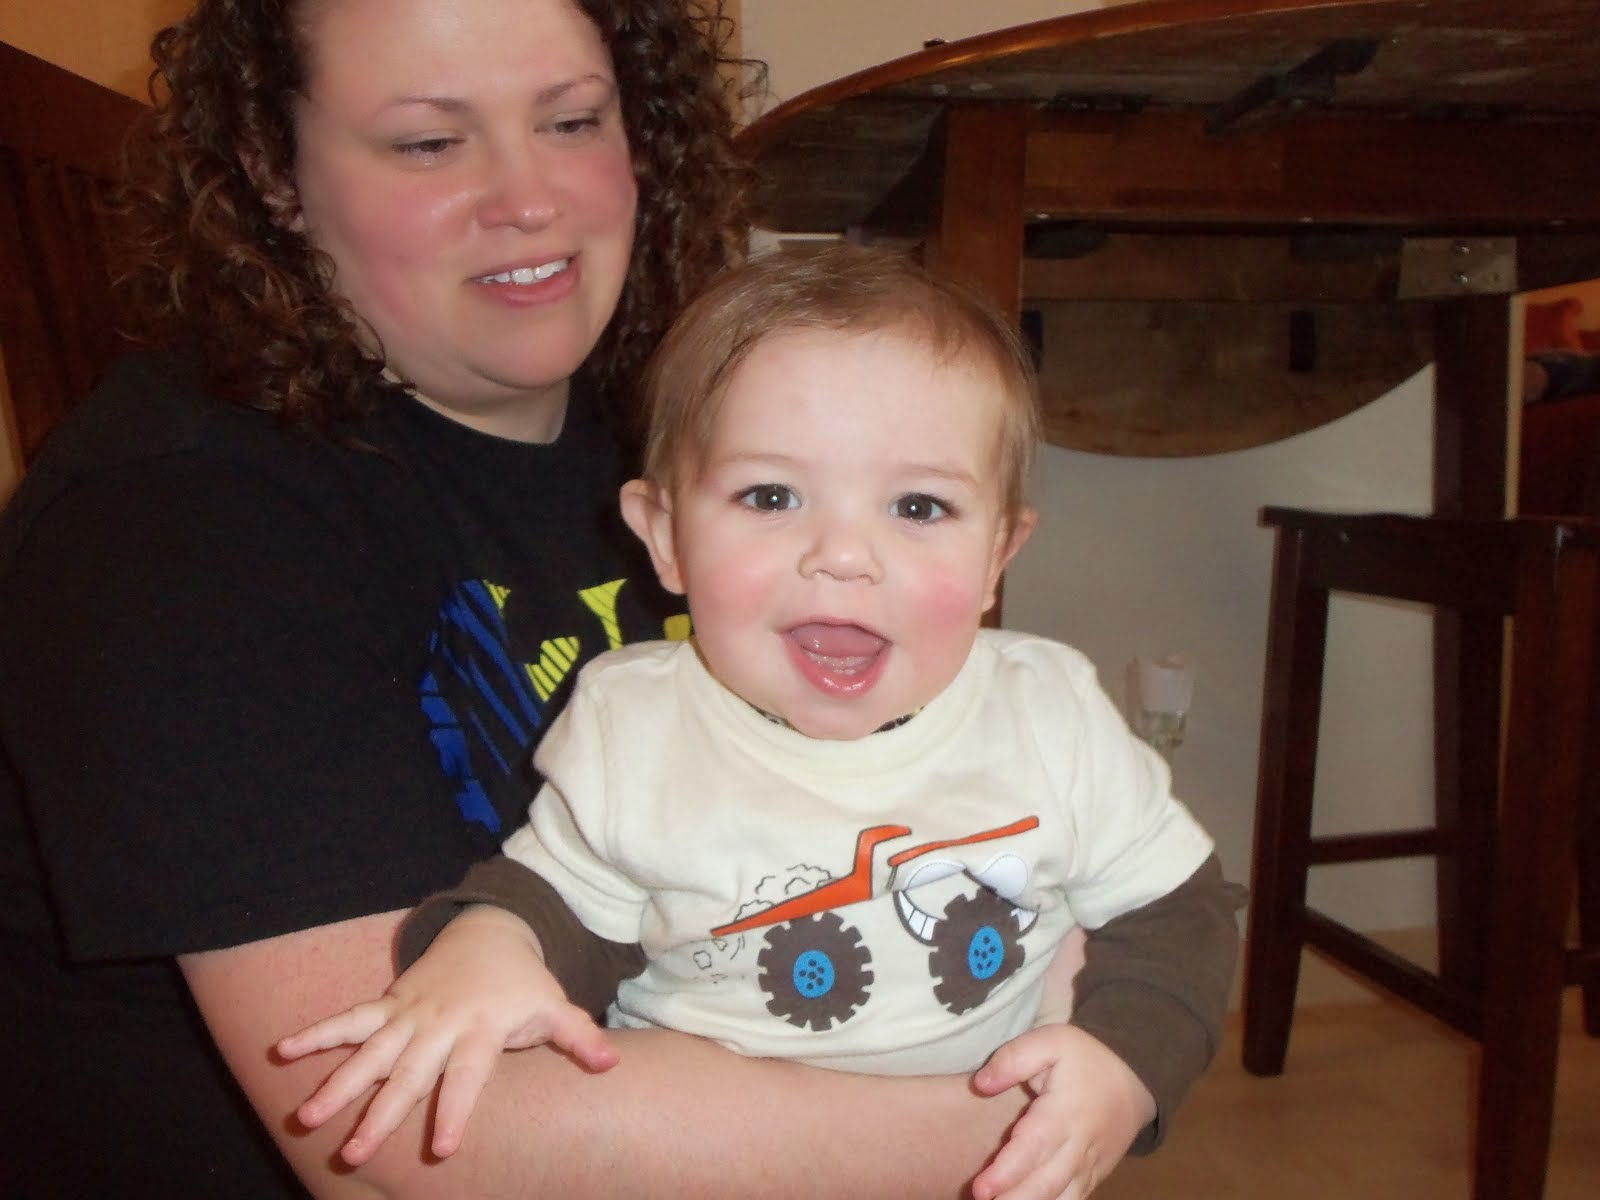 Third grandson Tate and his mommy Janelle